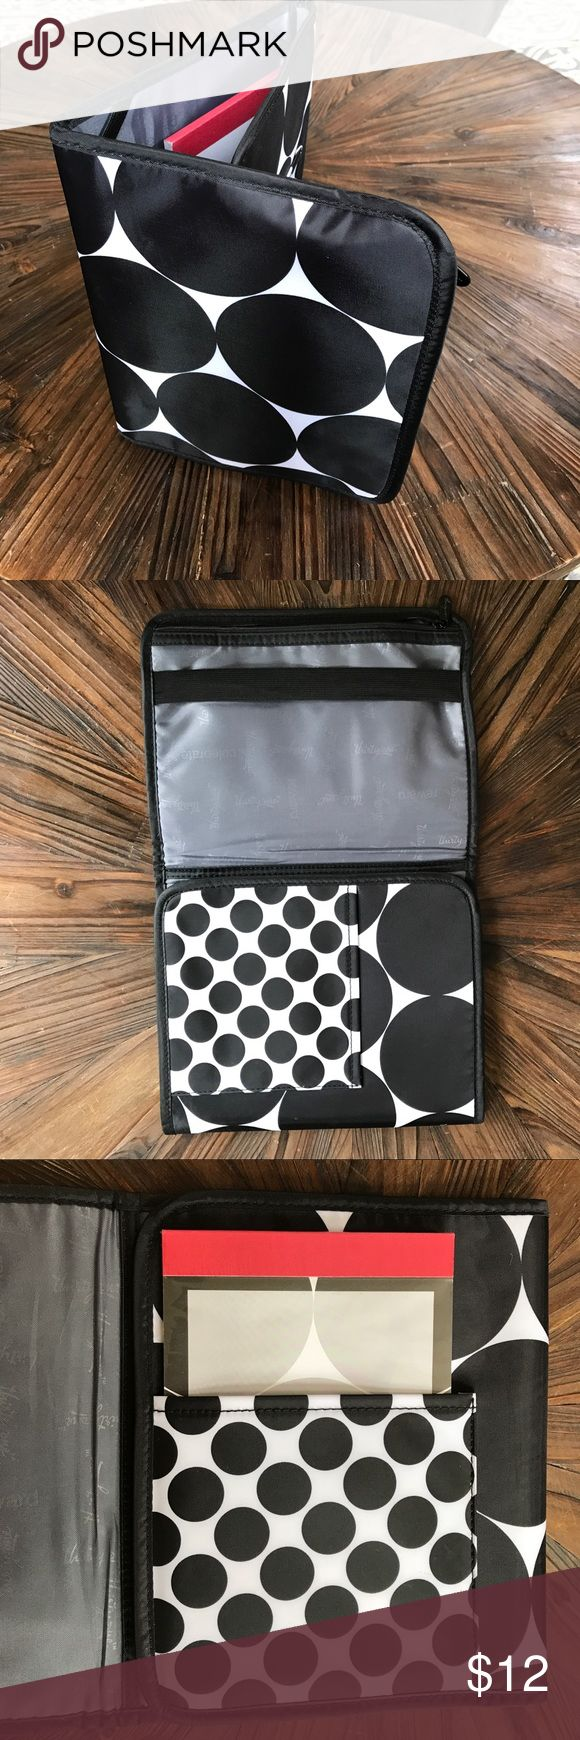 Thirty One iPad Case w/ Notepad Thirty One iPad Case w/ Notepad • Case is EUC and the Notepad is NEW with wrapping still on it• Big Dot Design! Can ship quick • Bundle & Save! Thirty One Accessories Tablet Cases